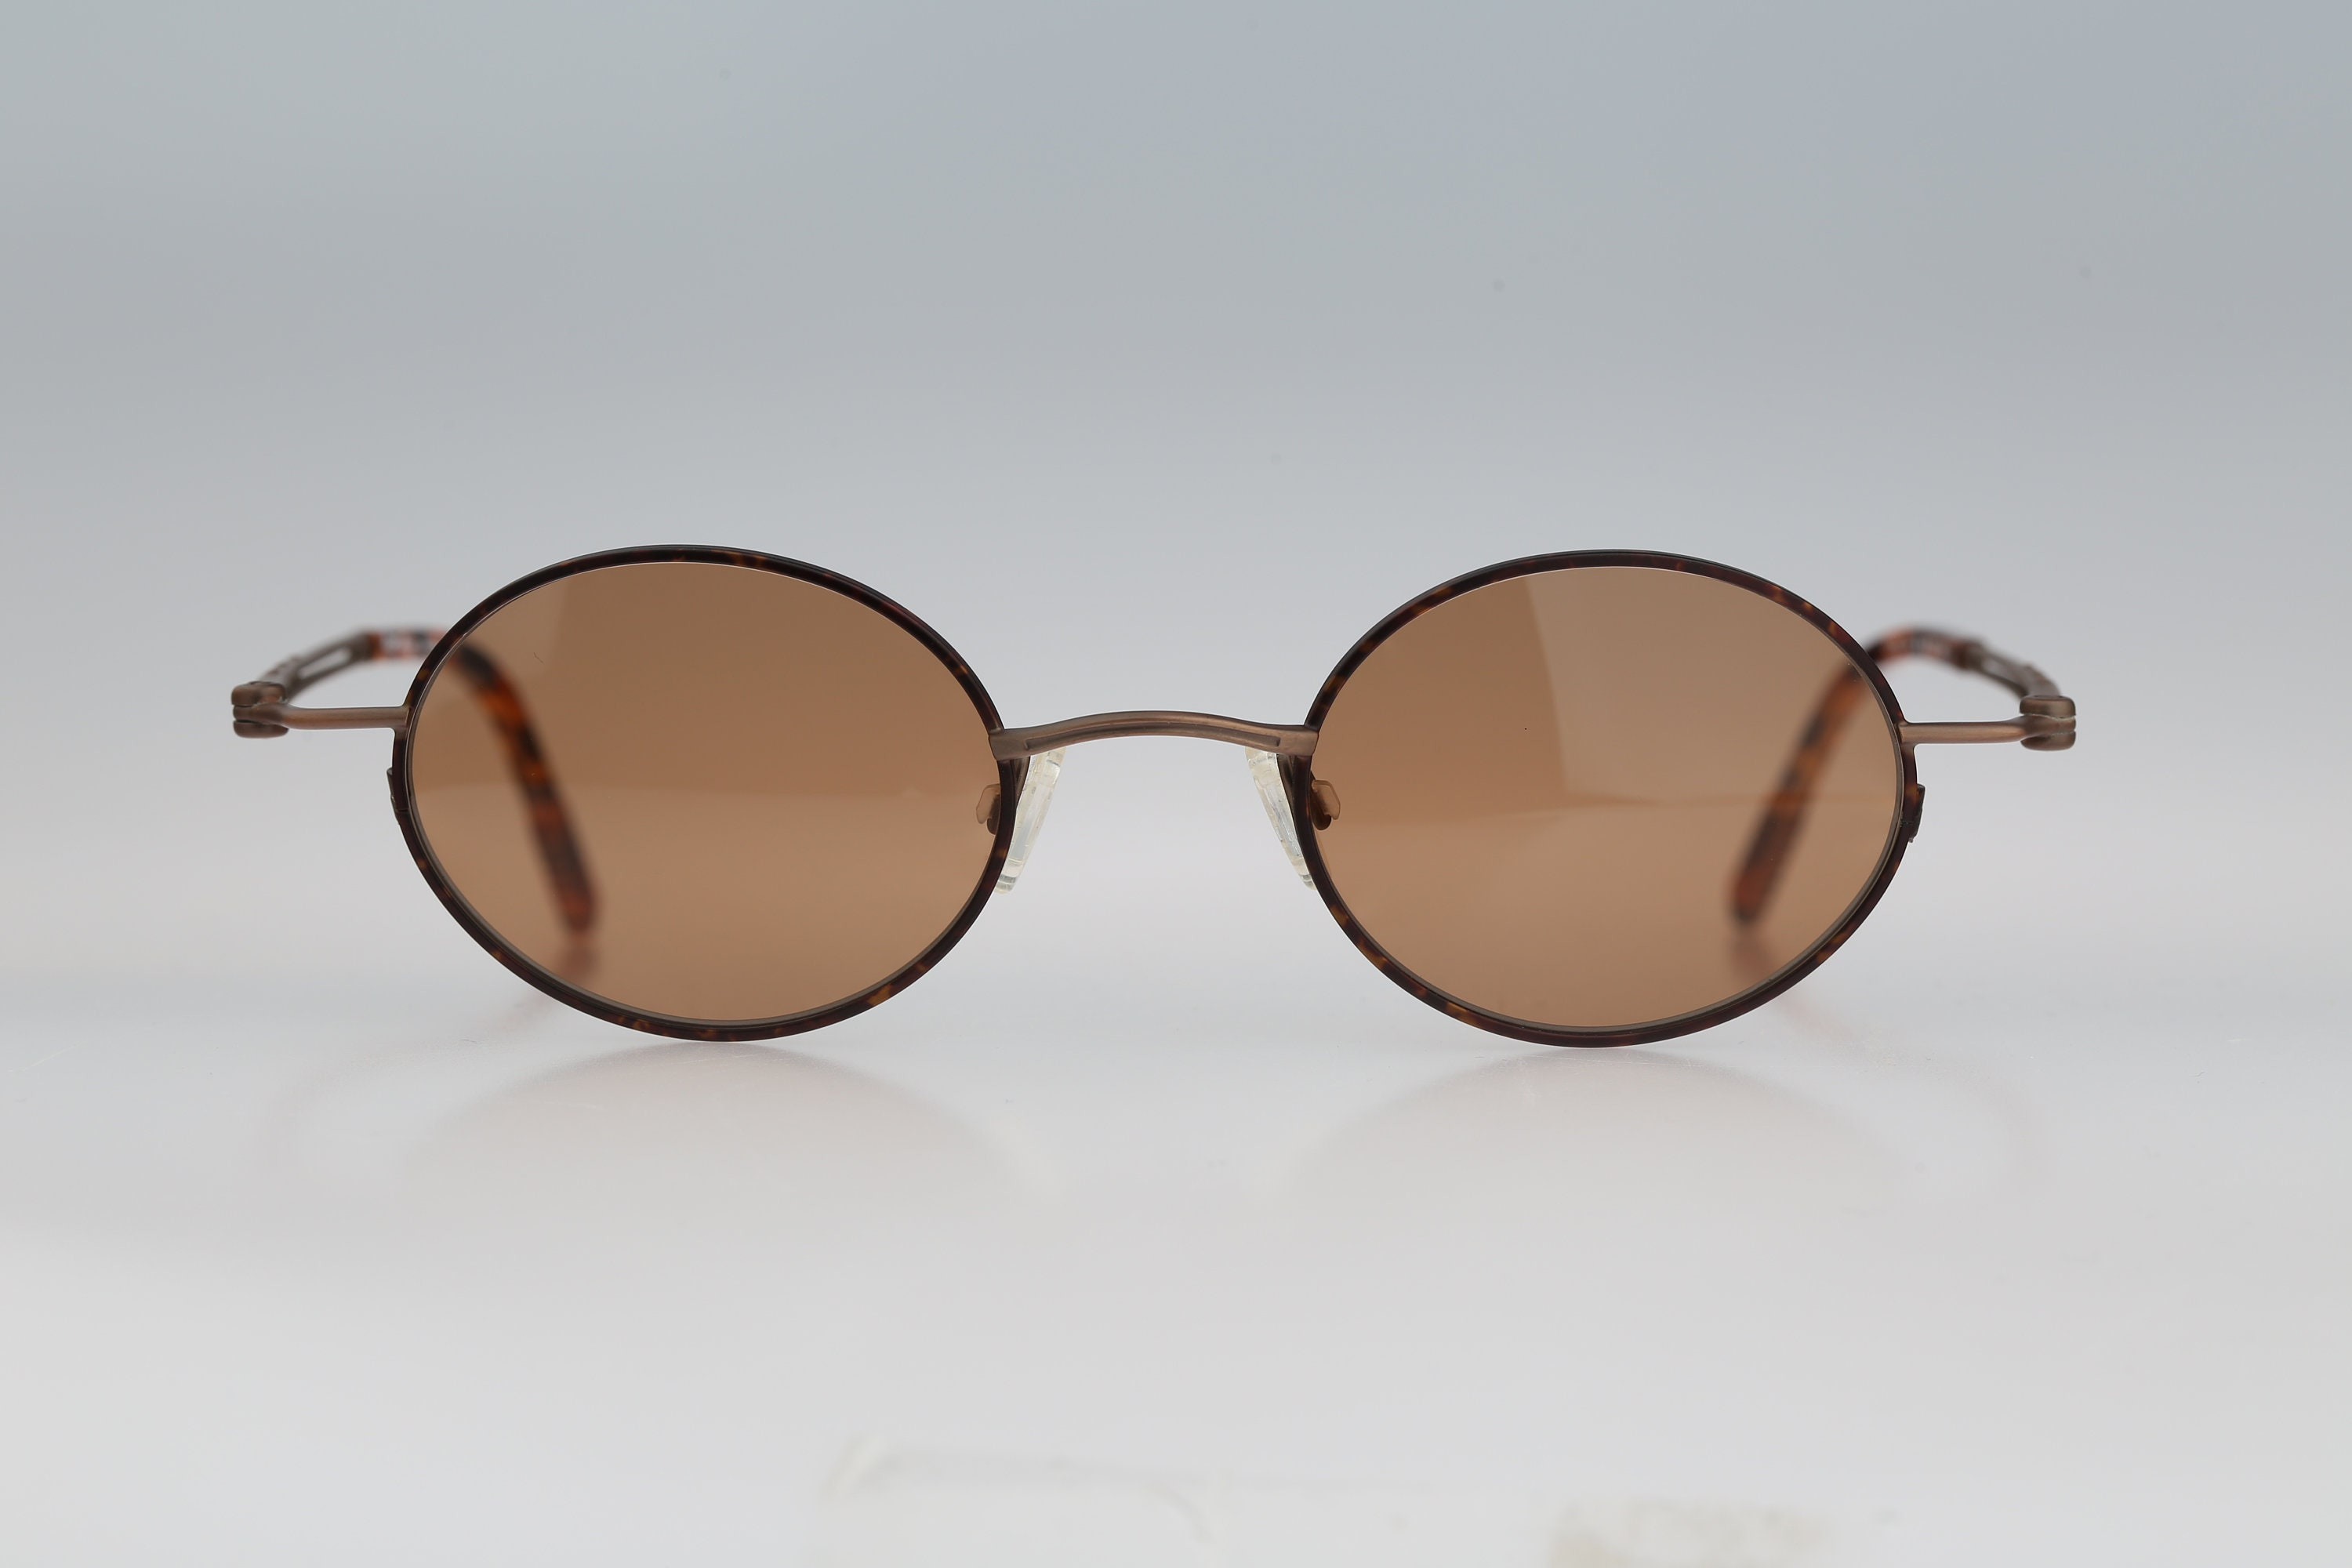 Small round sunglasses Robert Rudger 2255 174 1N Vintage 90s